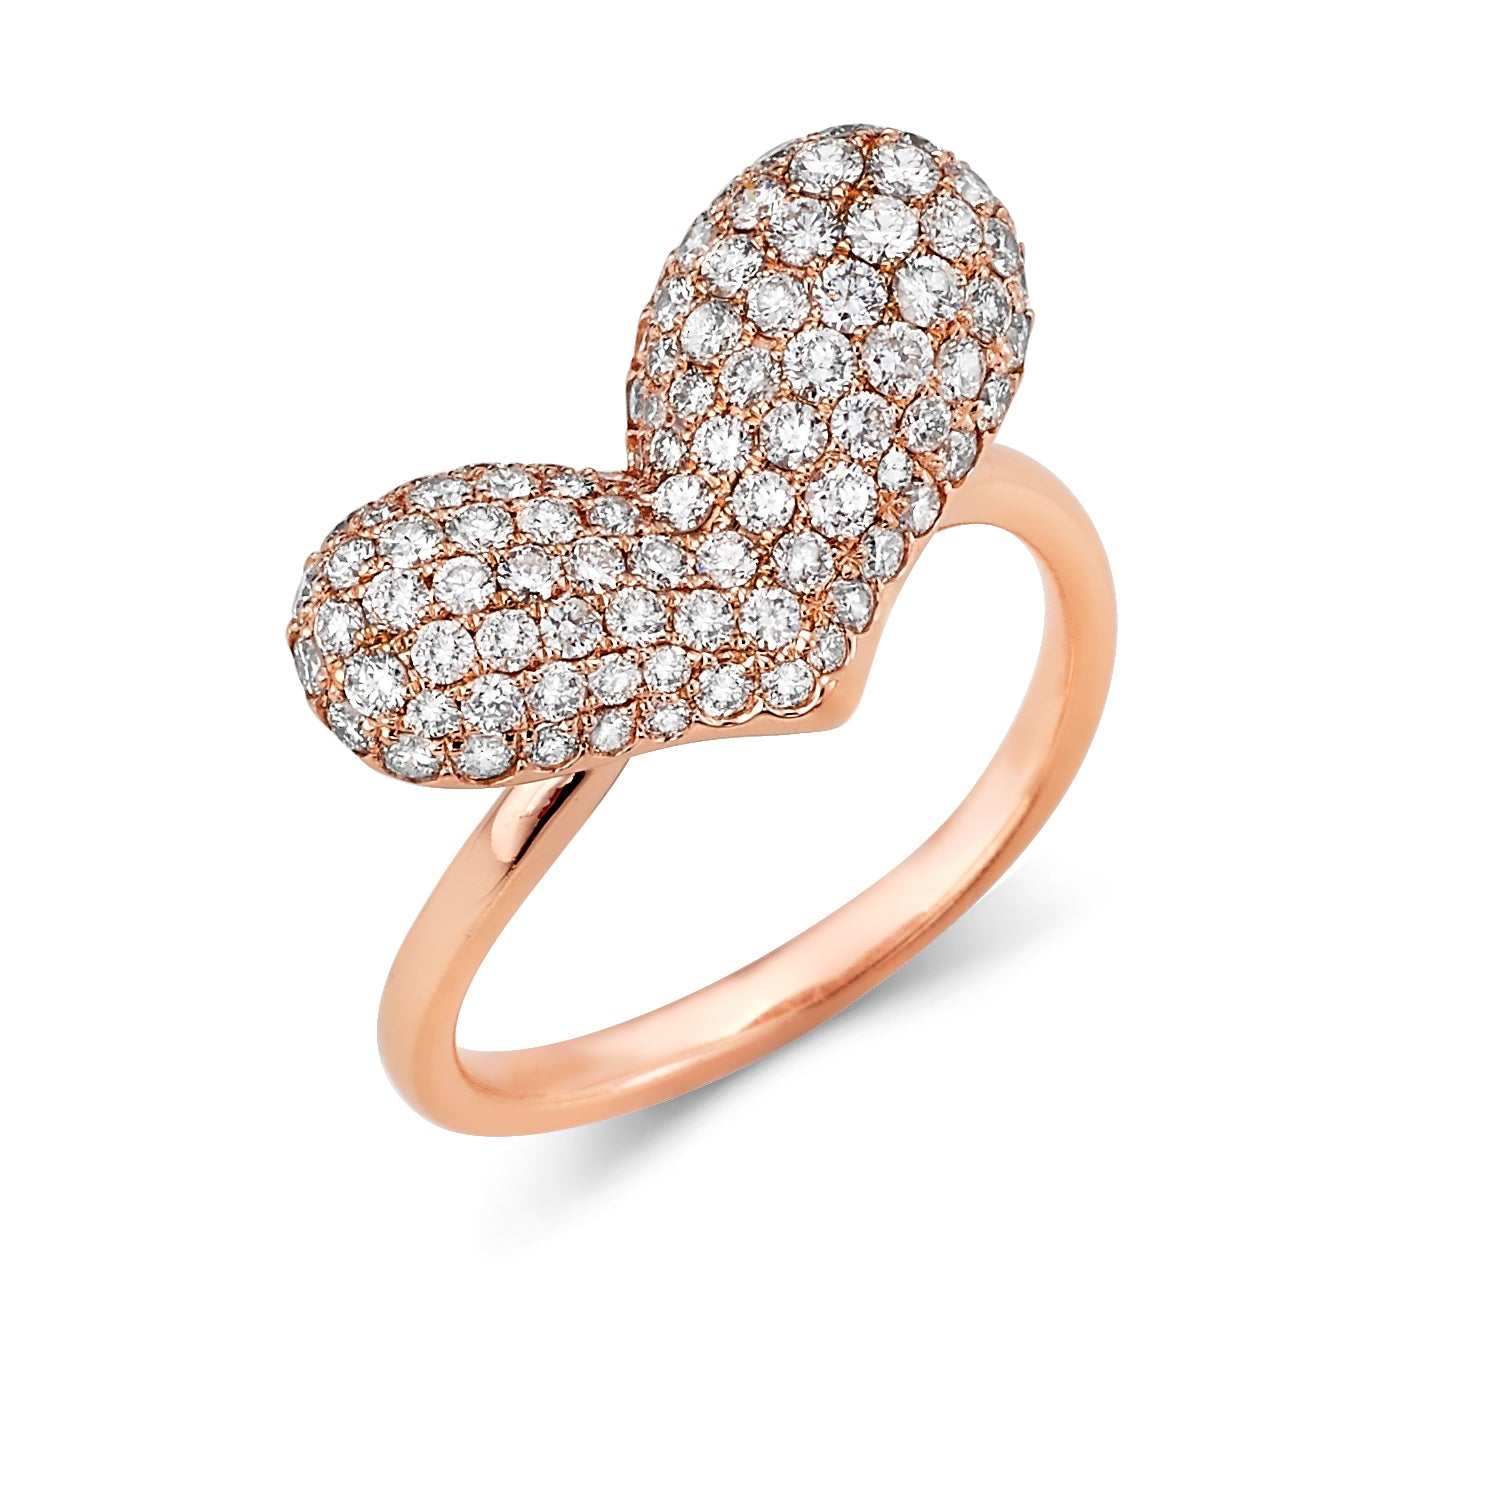 Puffy Pave Heart Diamond Ring